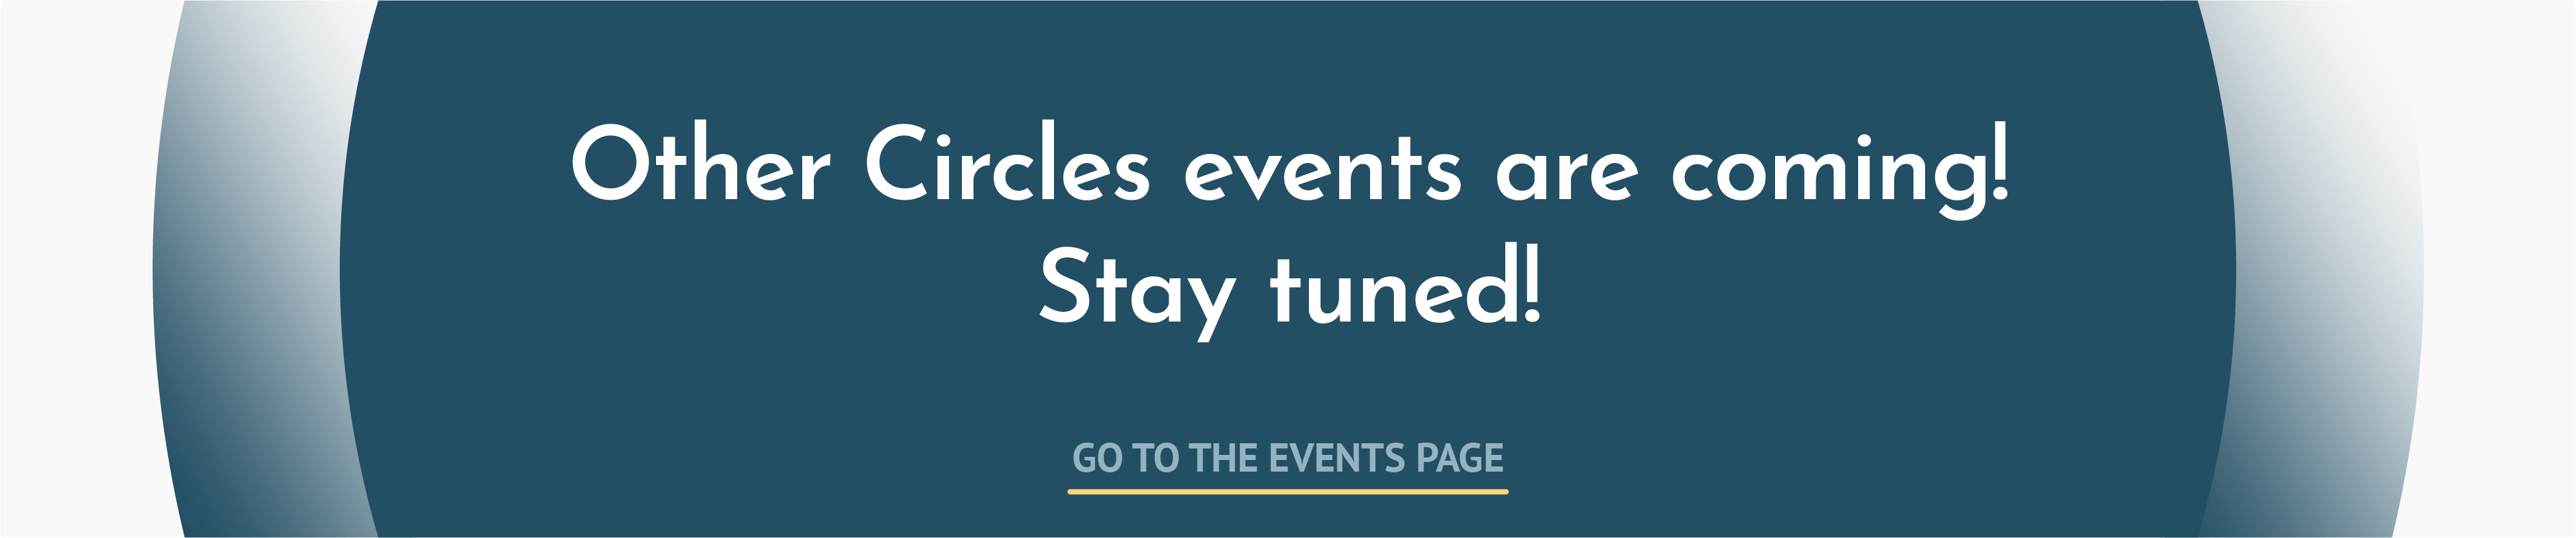 Go to the events page